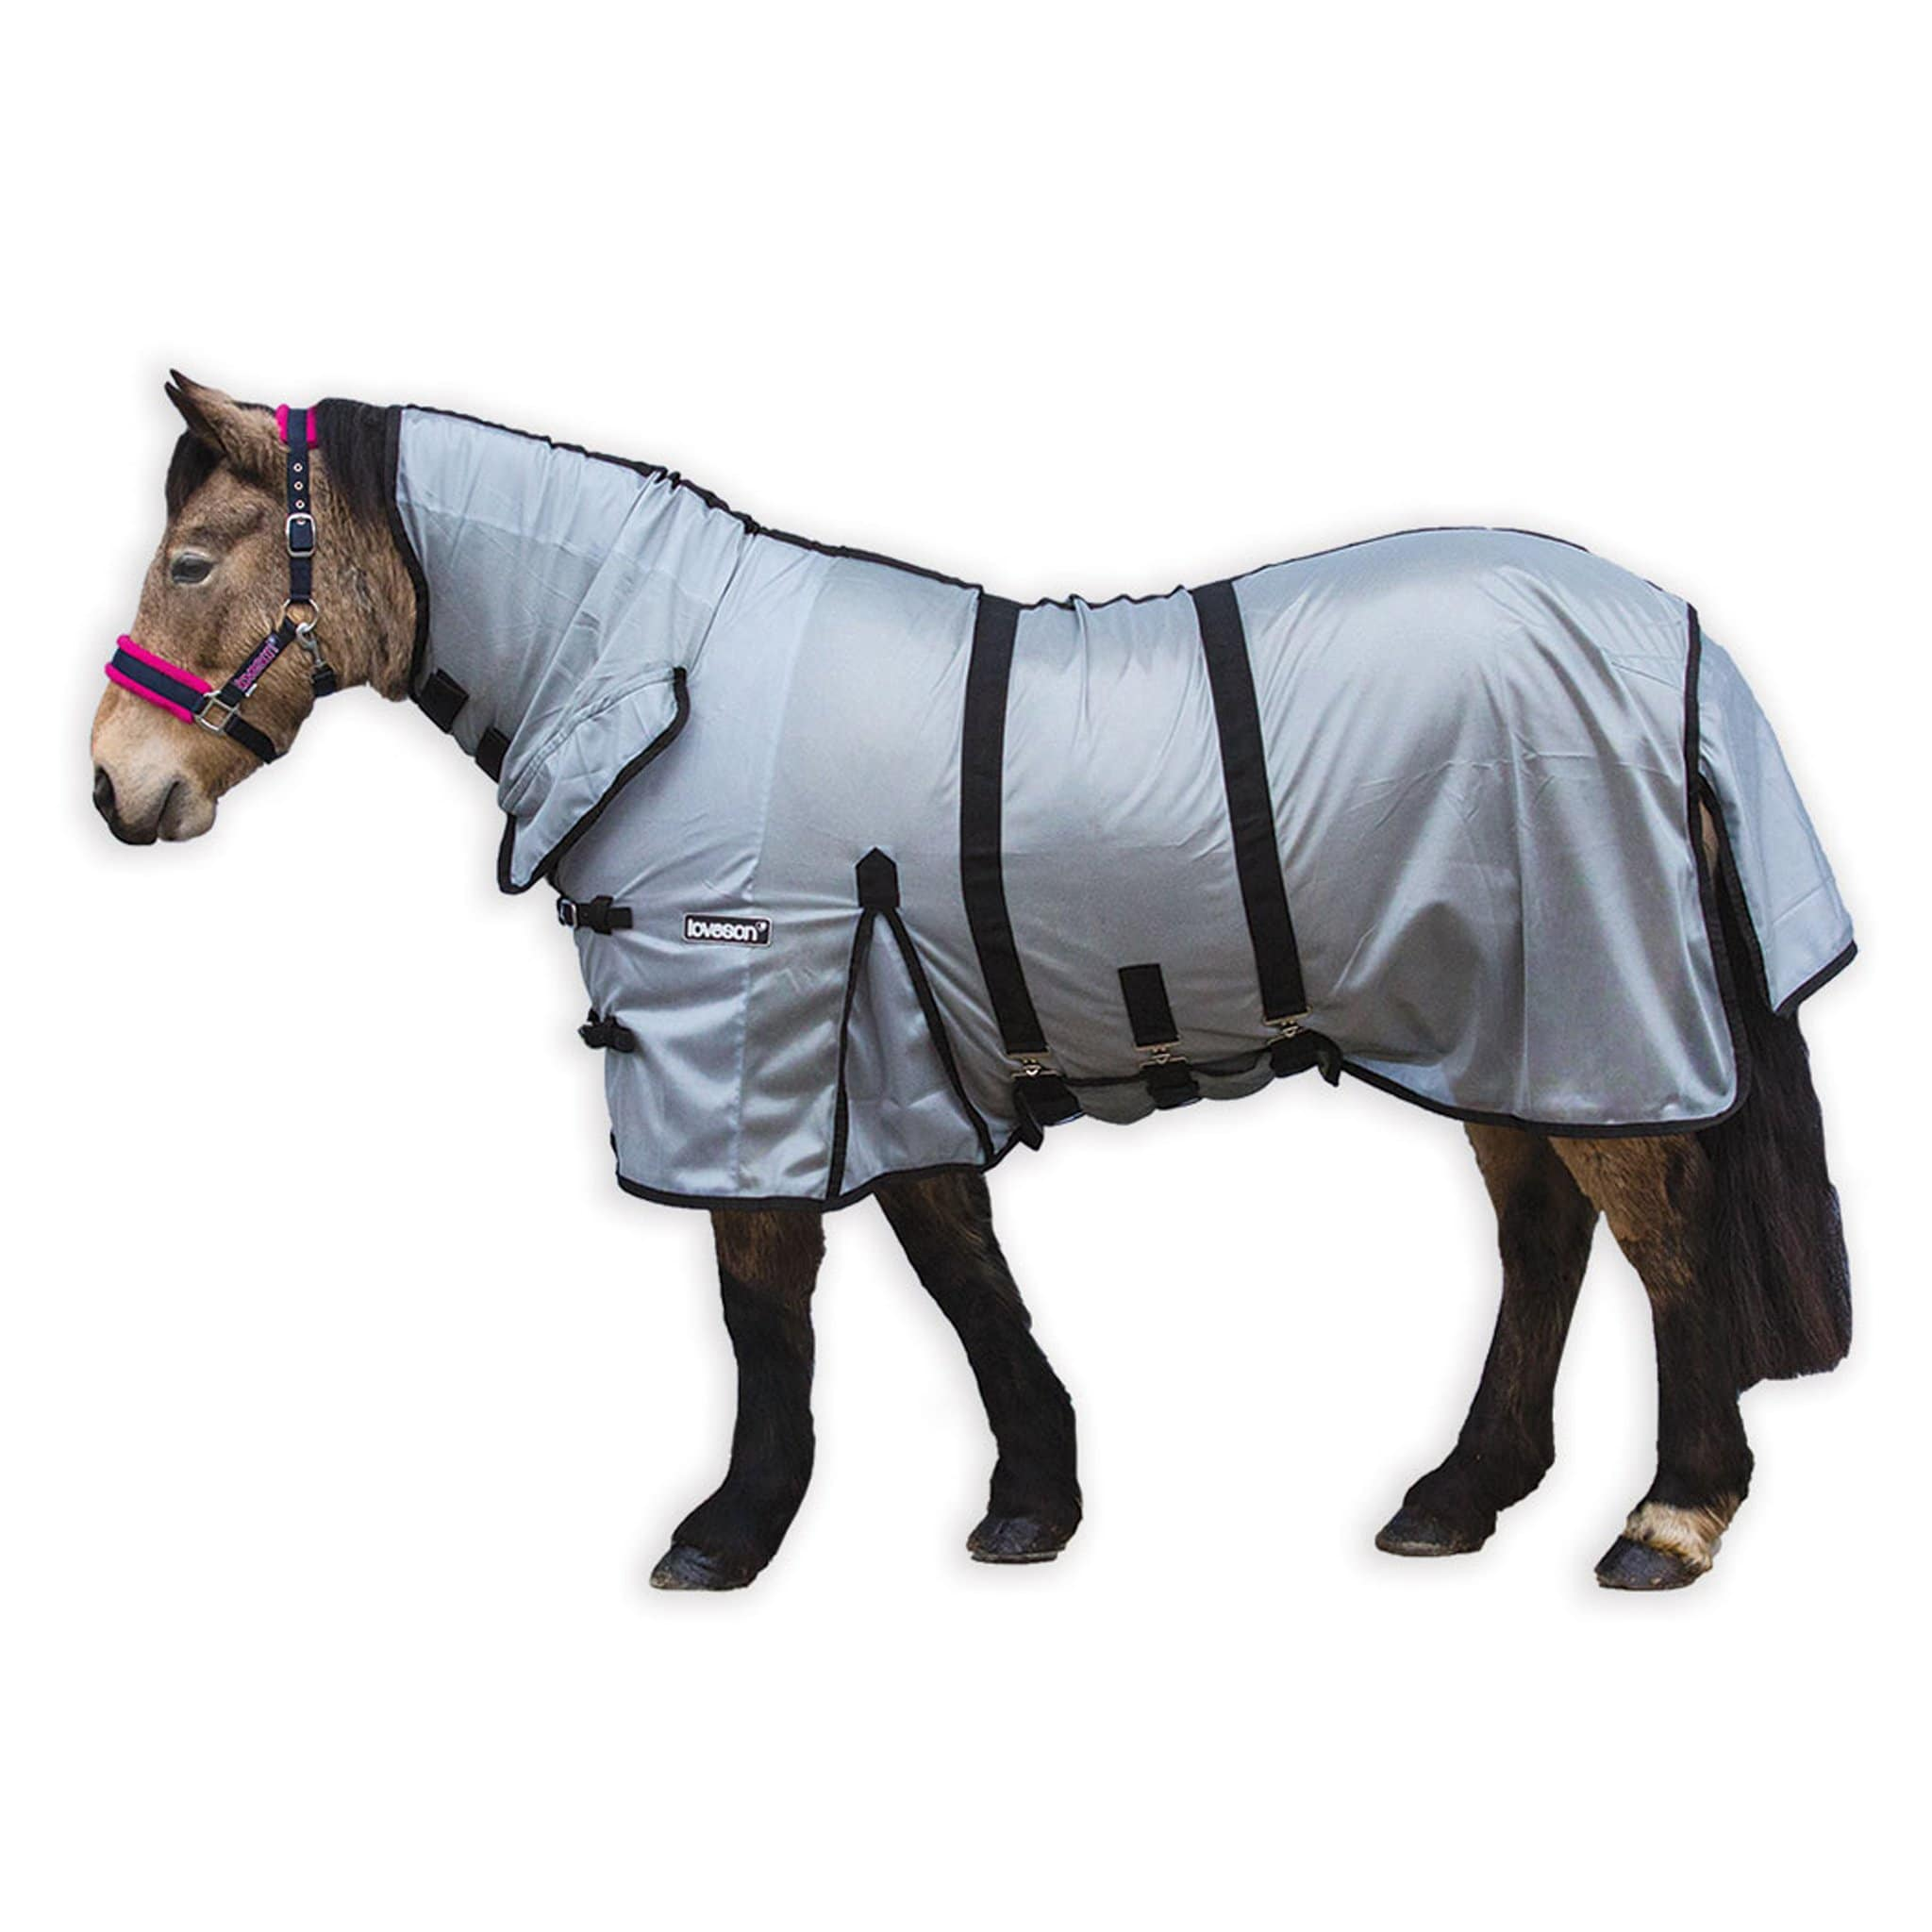 Loveson Fly Rug Combo AFLF70